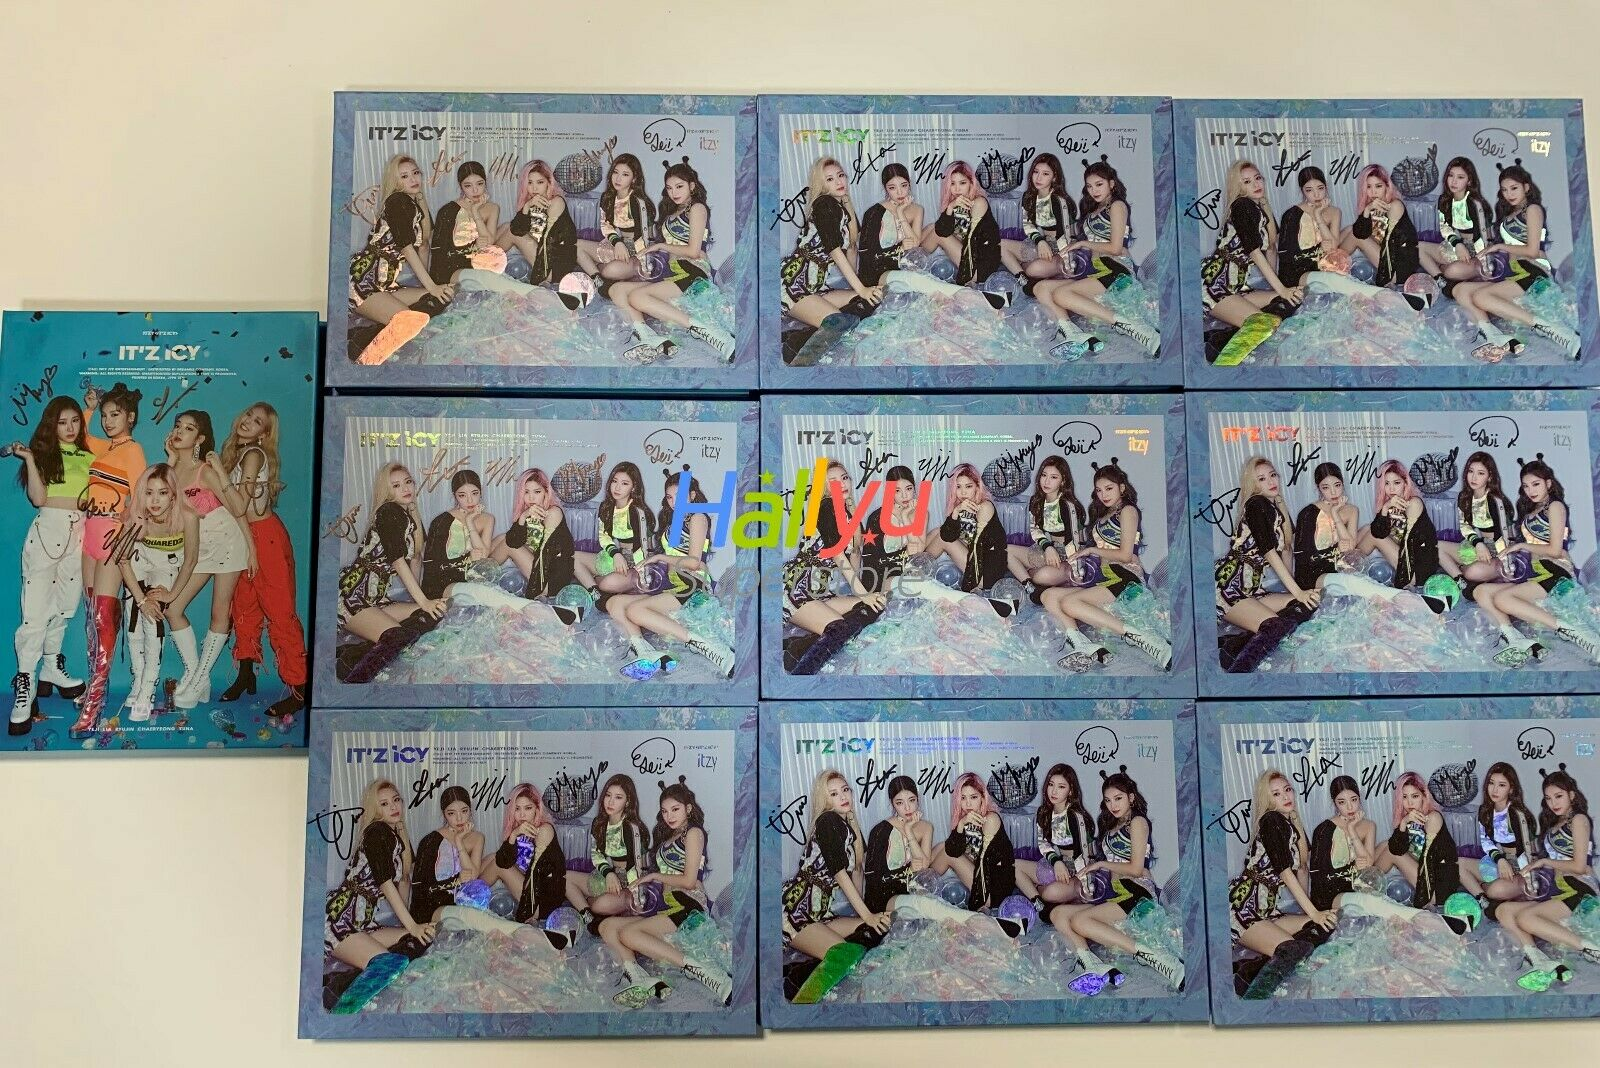 "ITZY ""IT'Z ICY"" - Autographed(Signed) Promo Album (updated 10-17)"